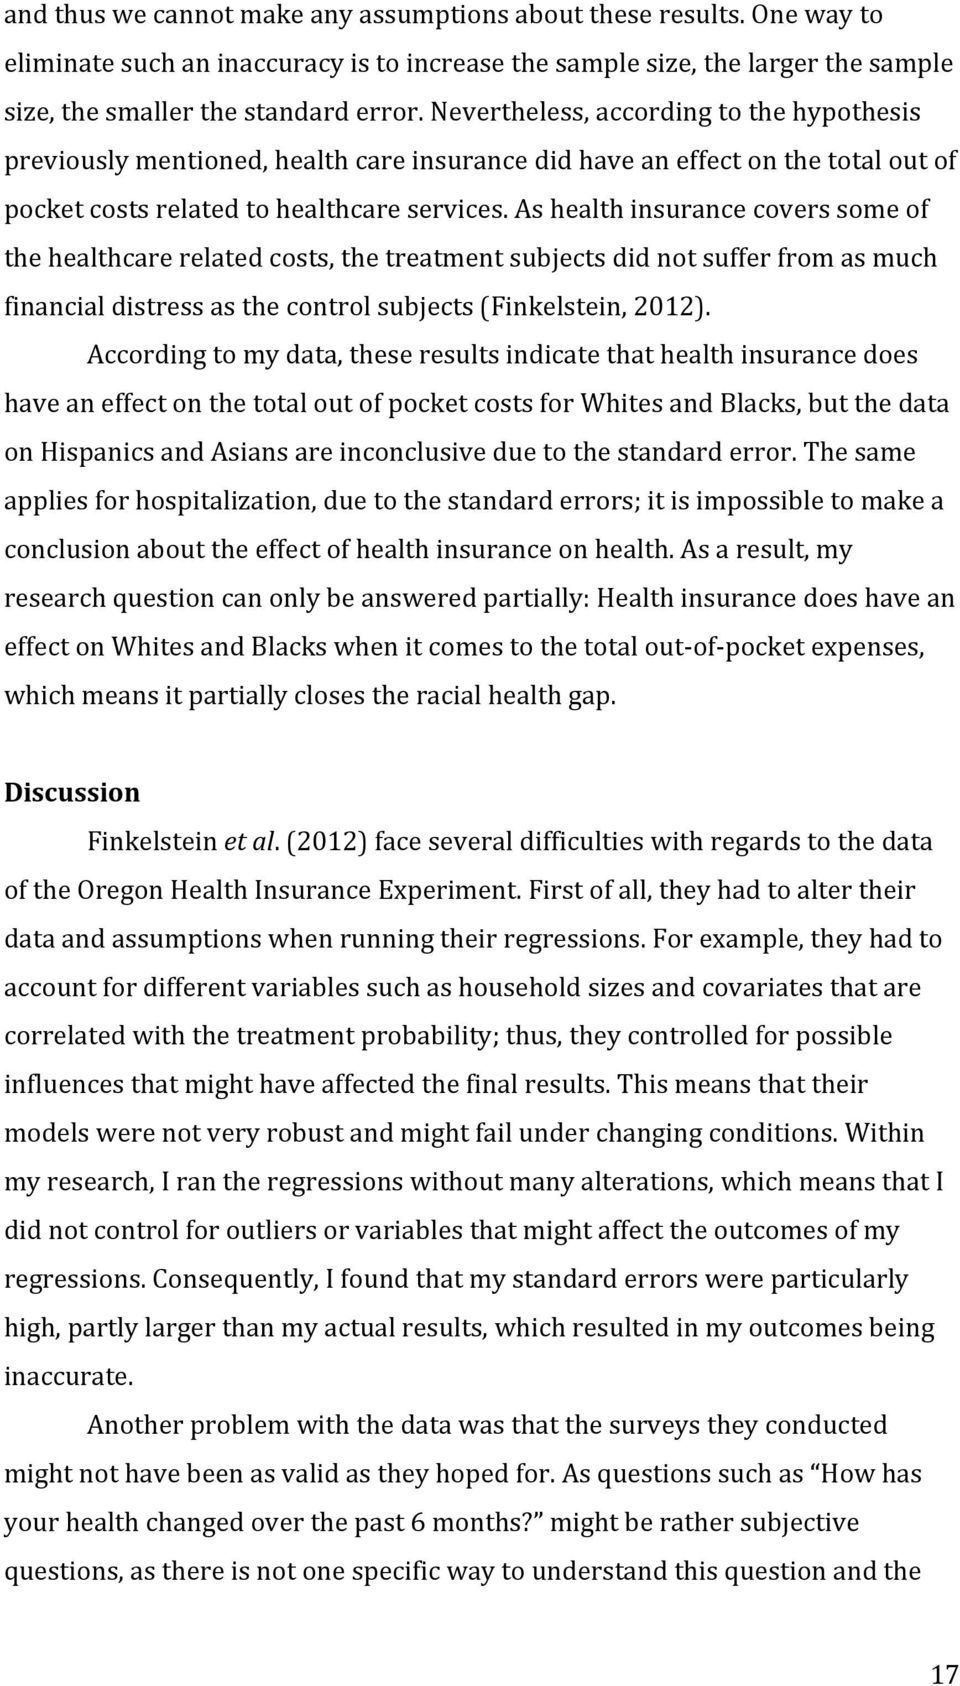 As health insurance covers some of the healthcare related costs, the treatment subjects did not suffer from as much financial distress as the control subjects (Finkelstein, 2012).